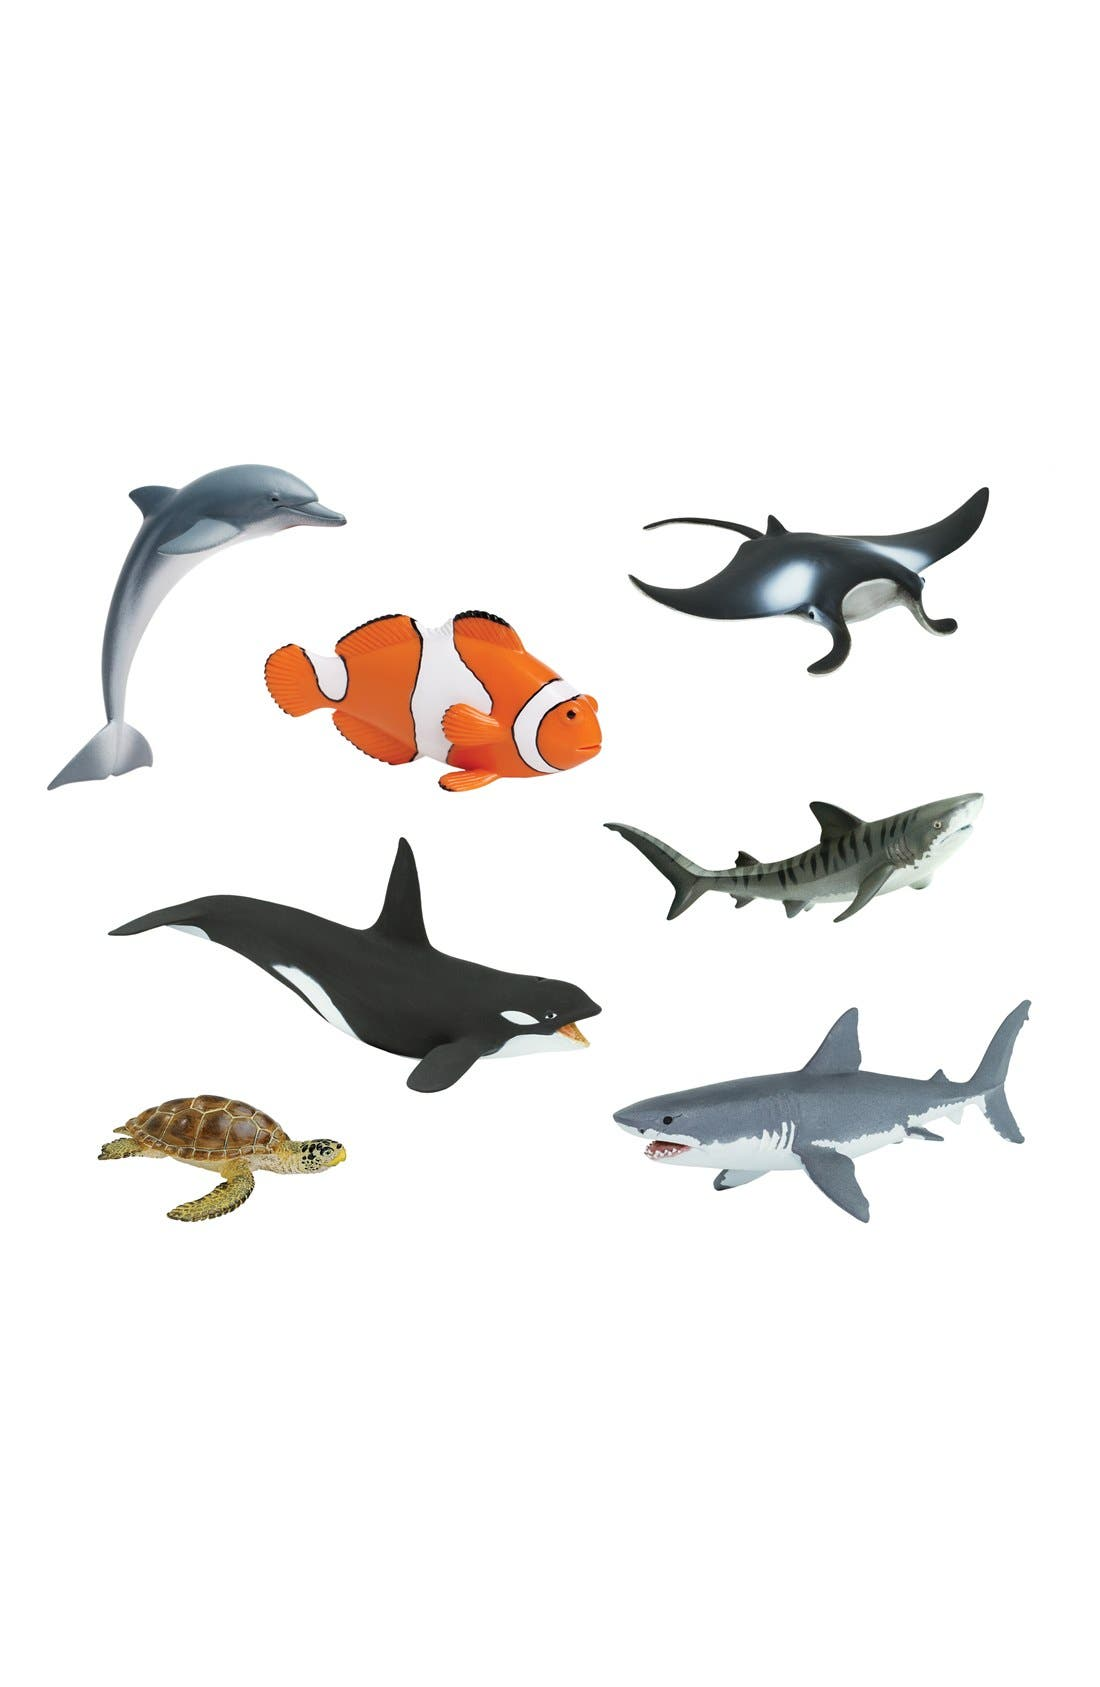 Main Image - Safari Ltd. Sea Life Figurines (Set of 7)